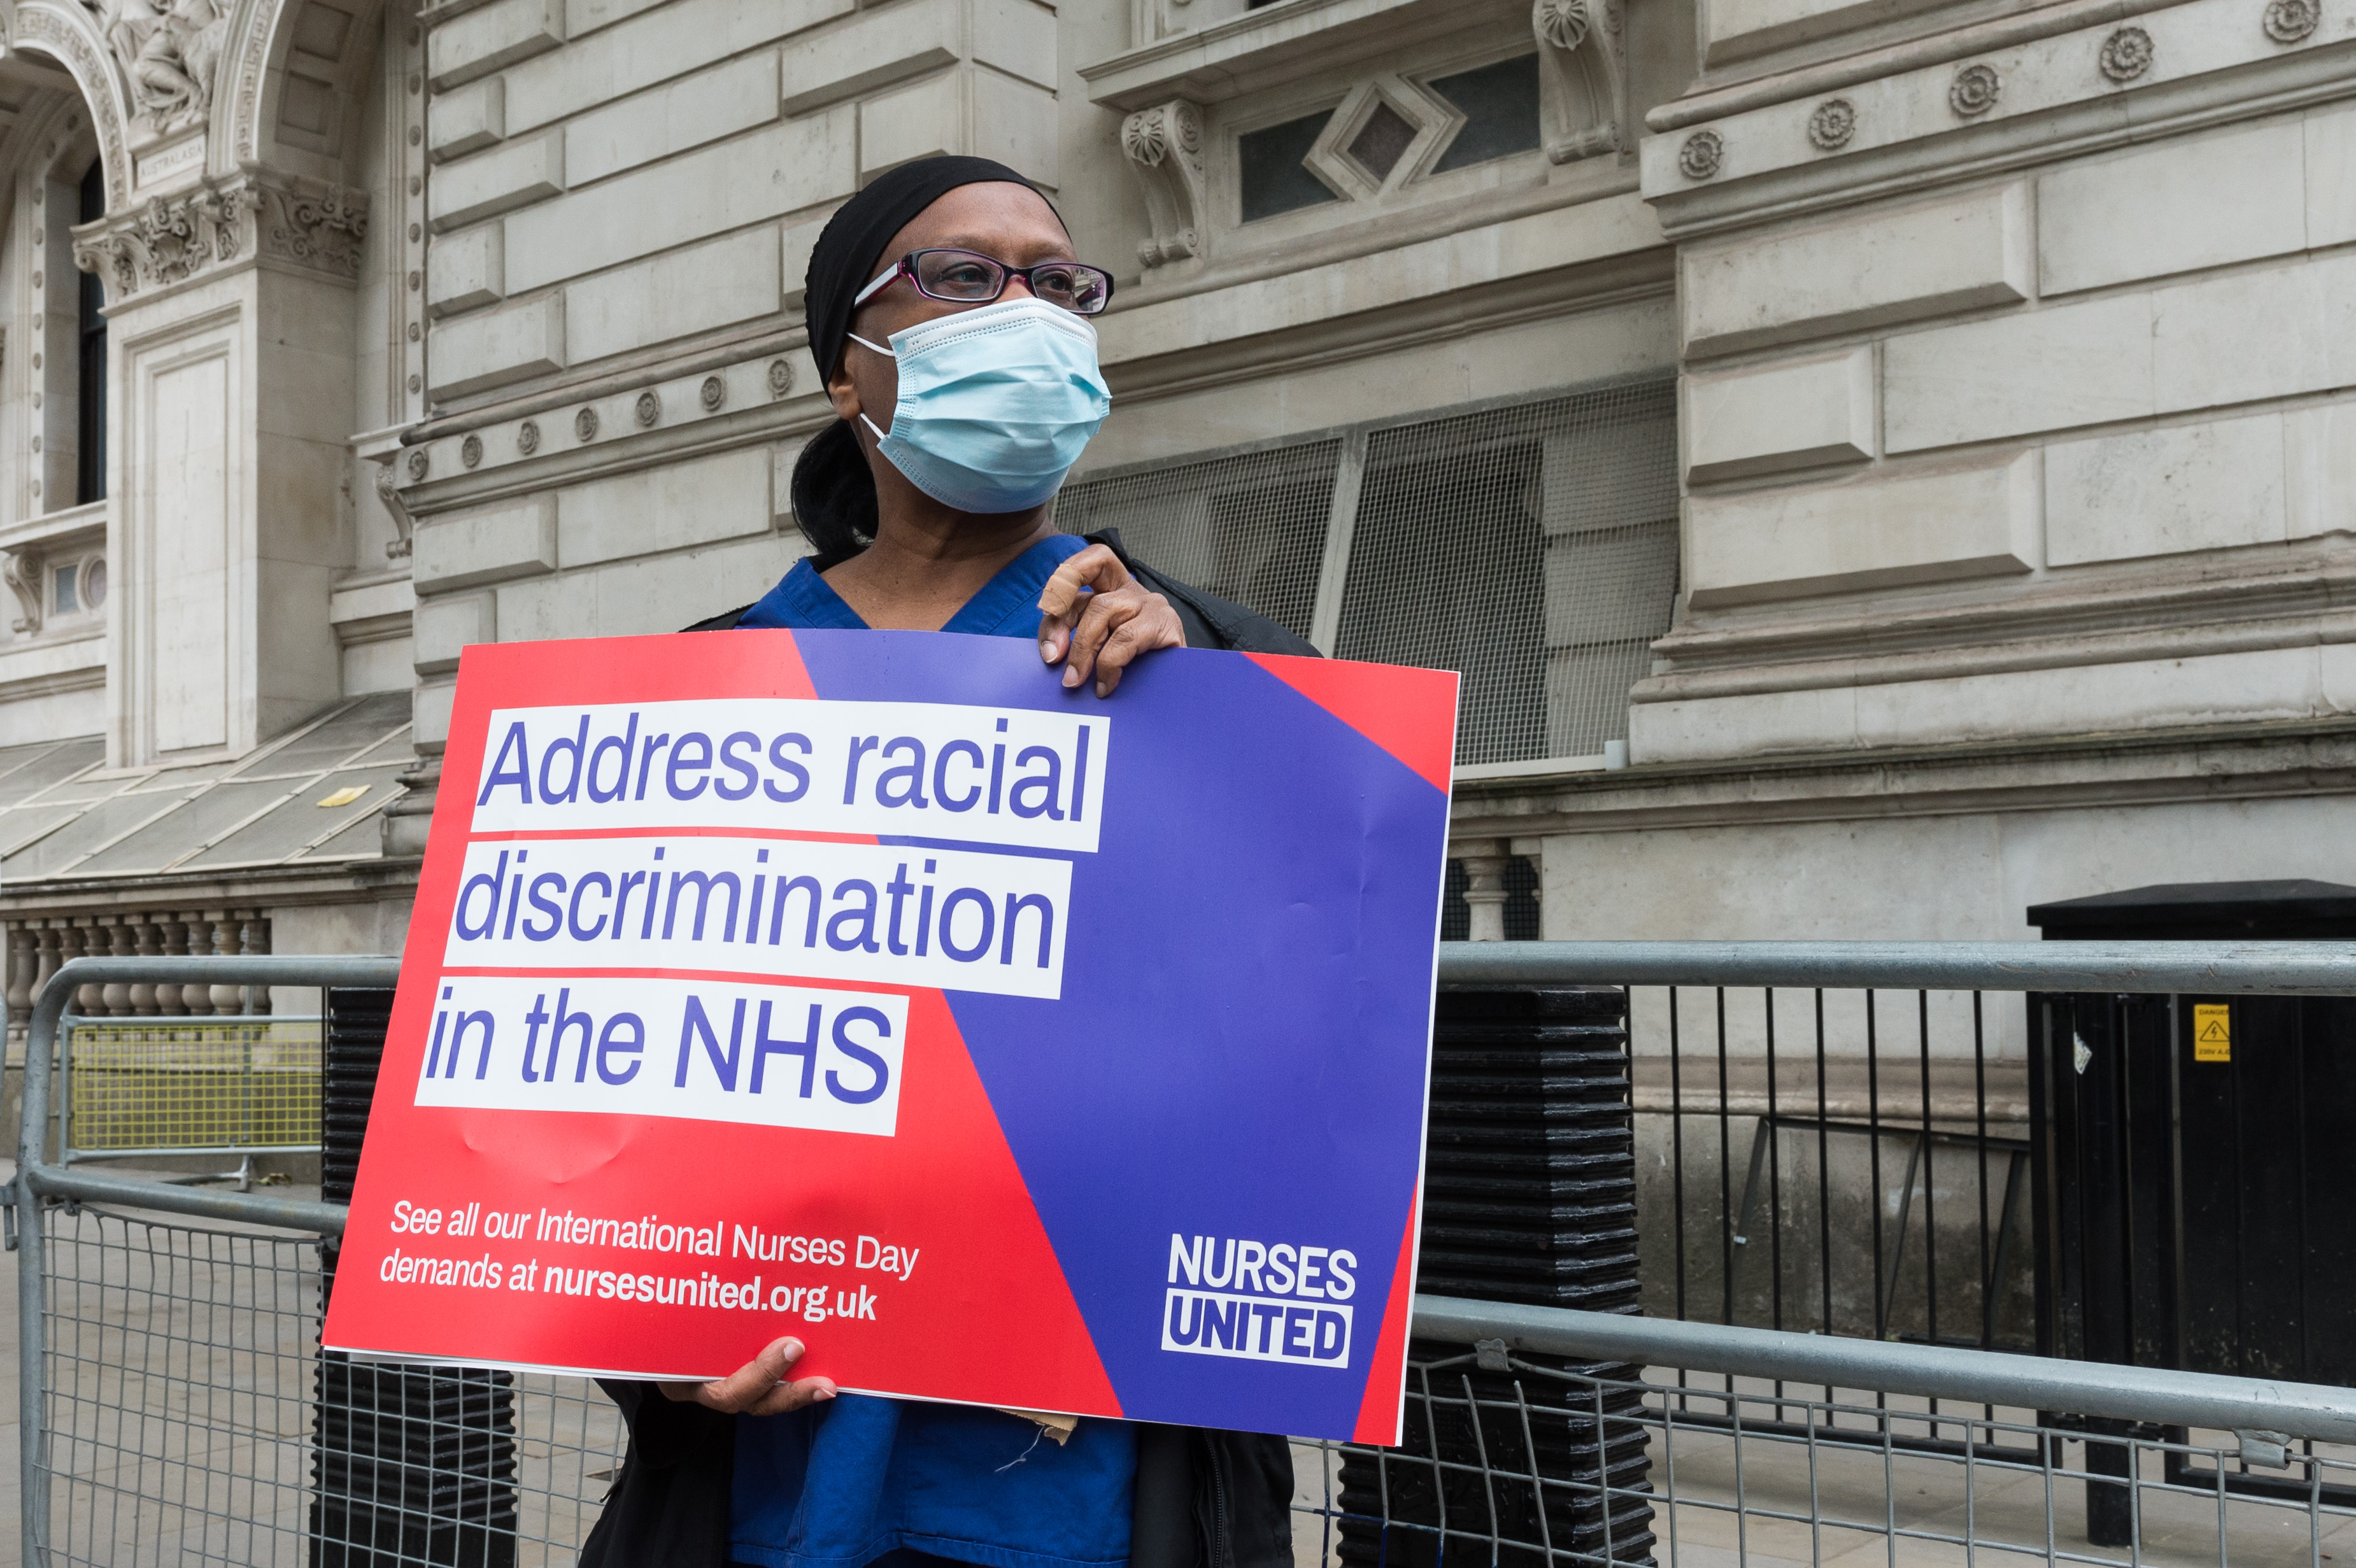 A group of nurses wearing face masks protest outside Downing Street demanding a pay rise, effective protection against COVID-19 and highlighting a disproportionately higher mortality rate from the novel coronavirus among BAME ethnic minority groups on 03 June, 2020 in London, England. (Photo by WIktor Szymanowicz/NurPhoto via Getty Images)